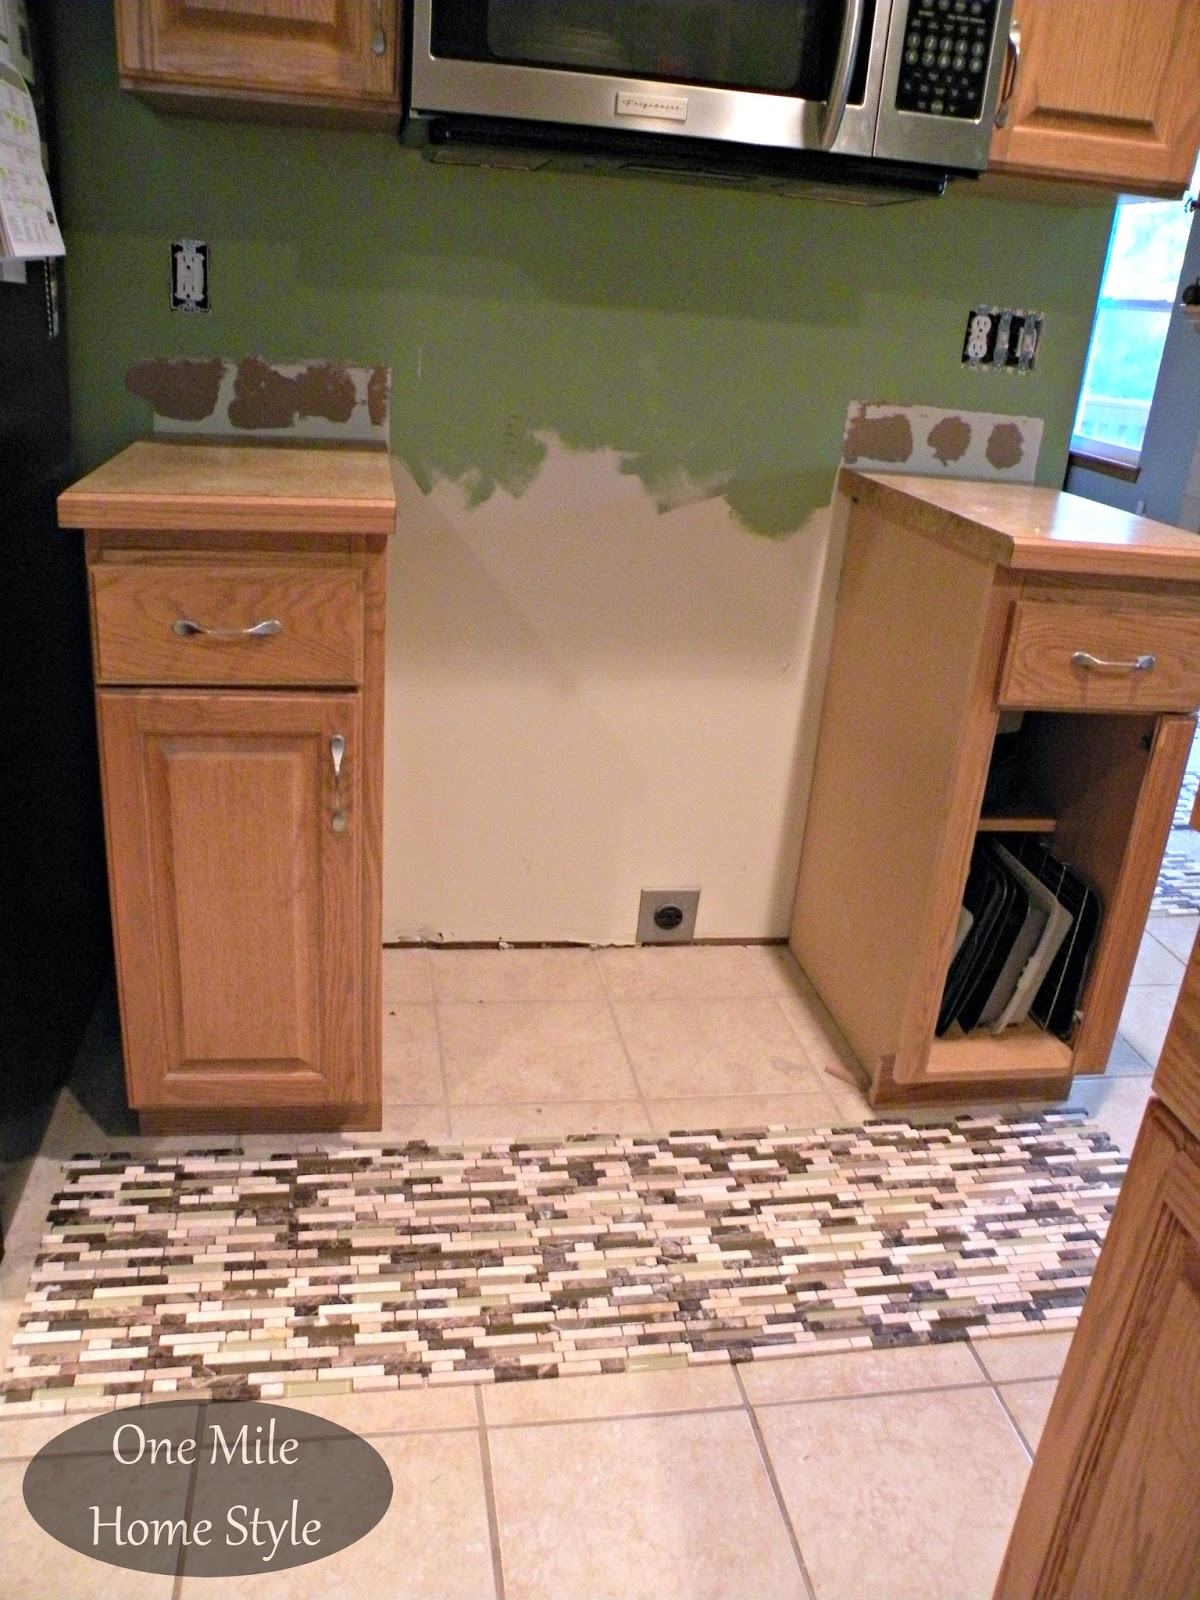 Laying out the backsplash tiles